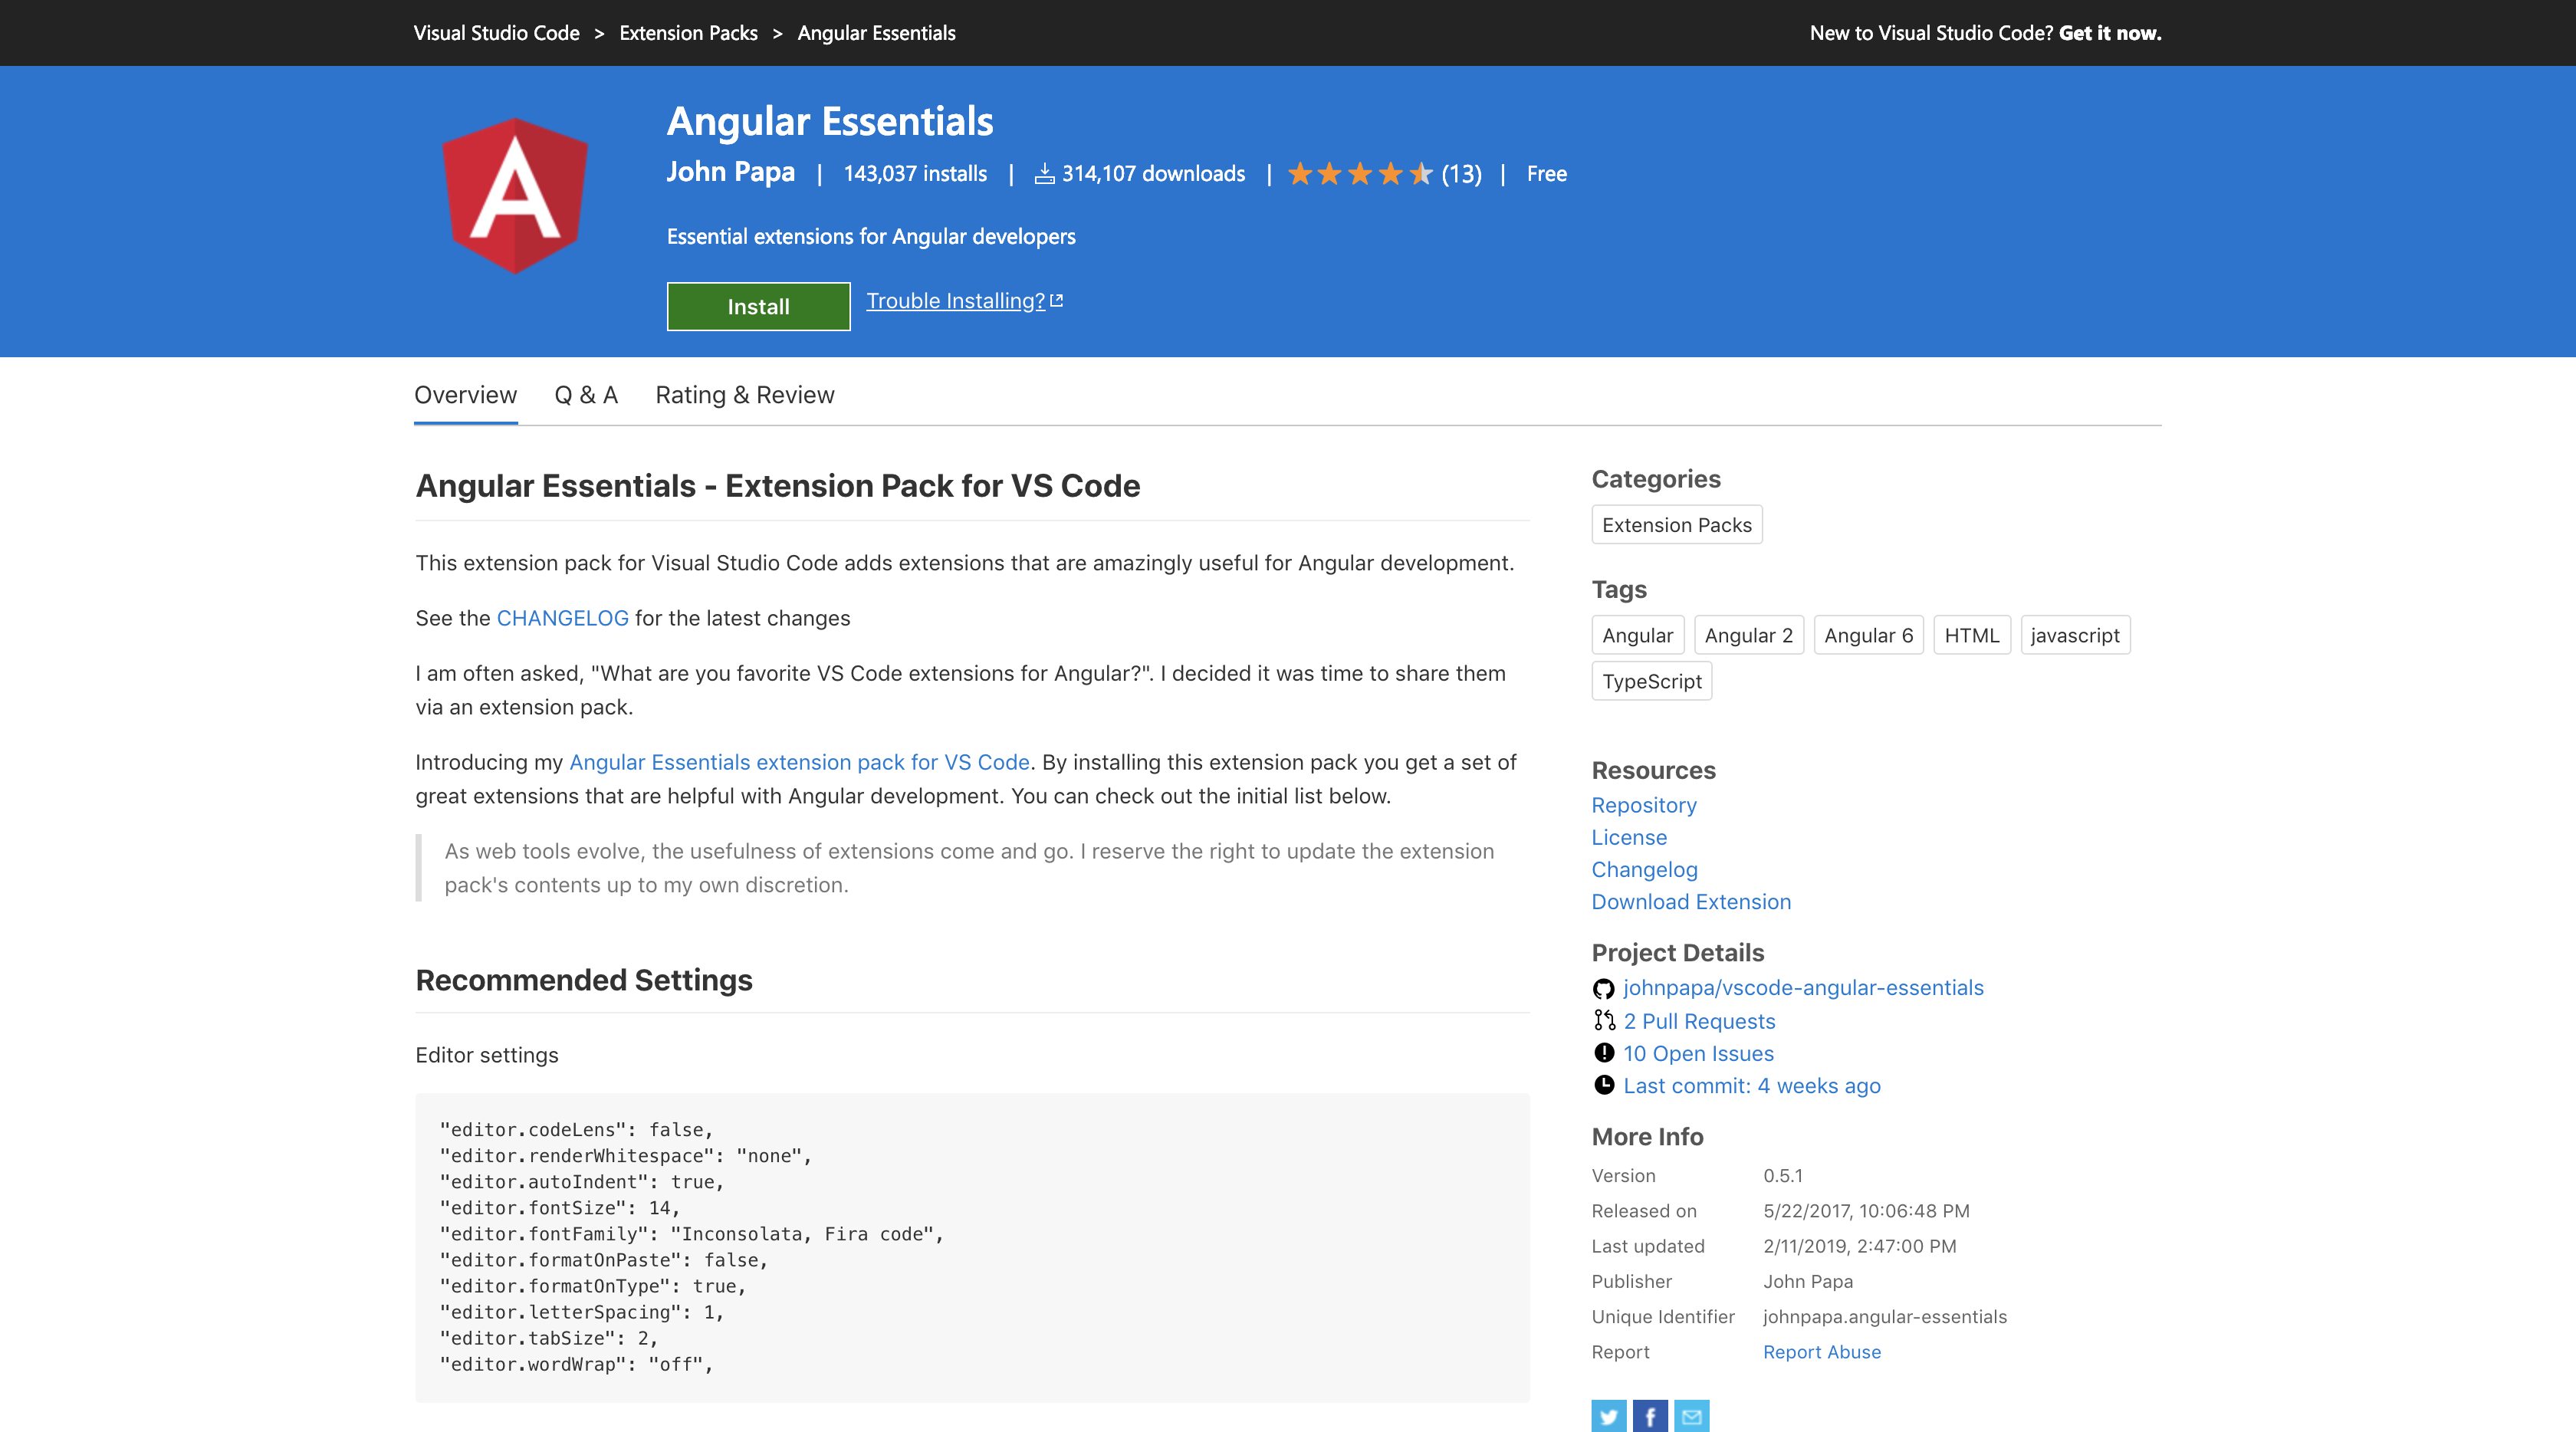 the Angular essentials pack home page